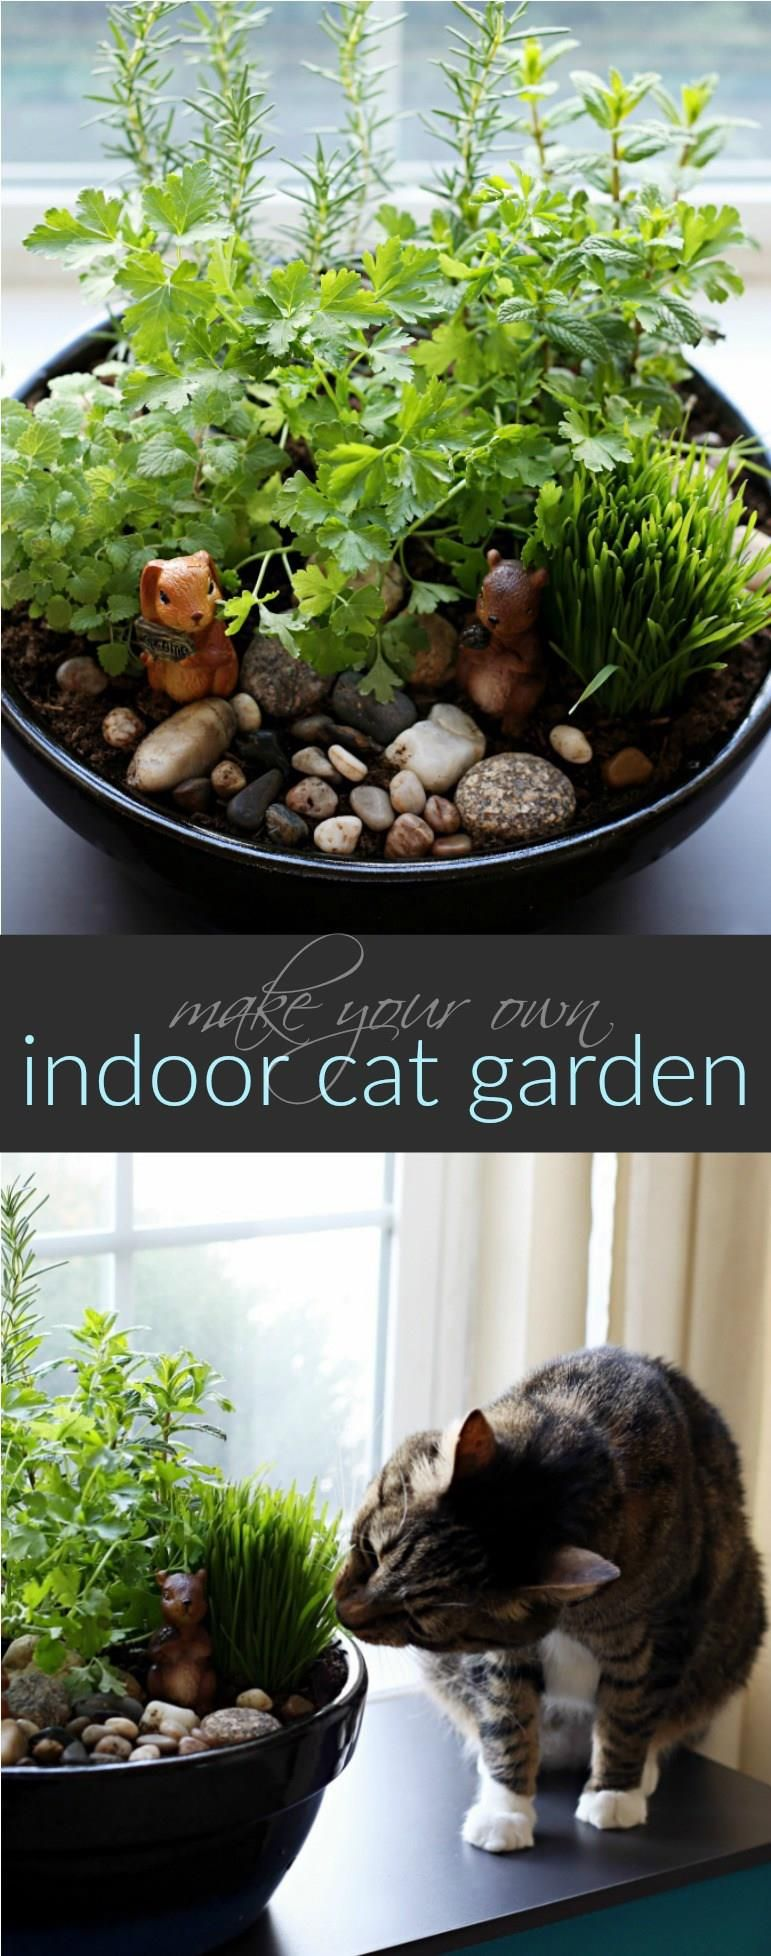 Indoor cat garden image by Ella Brewer on Wanted Cat